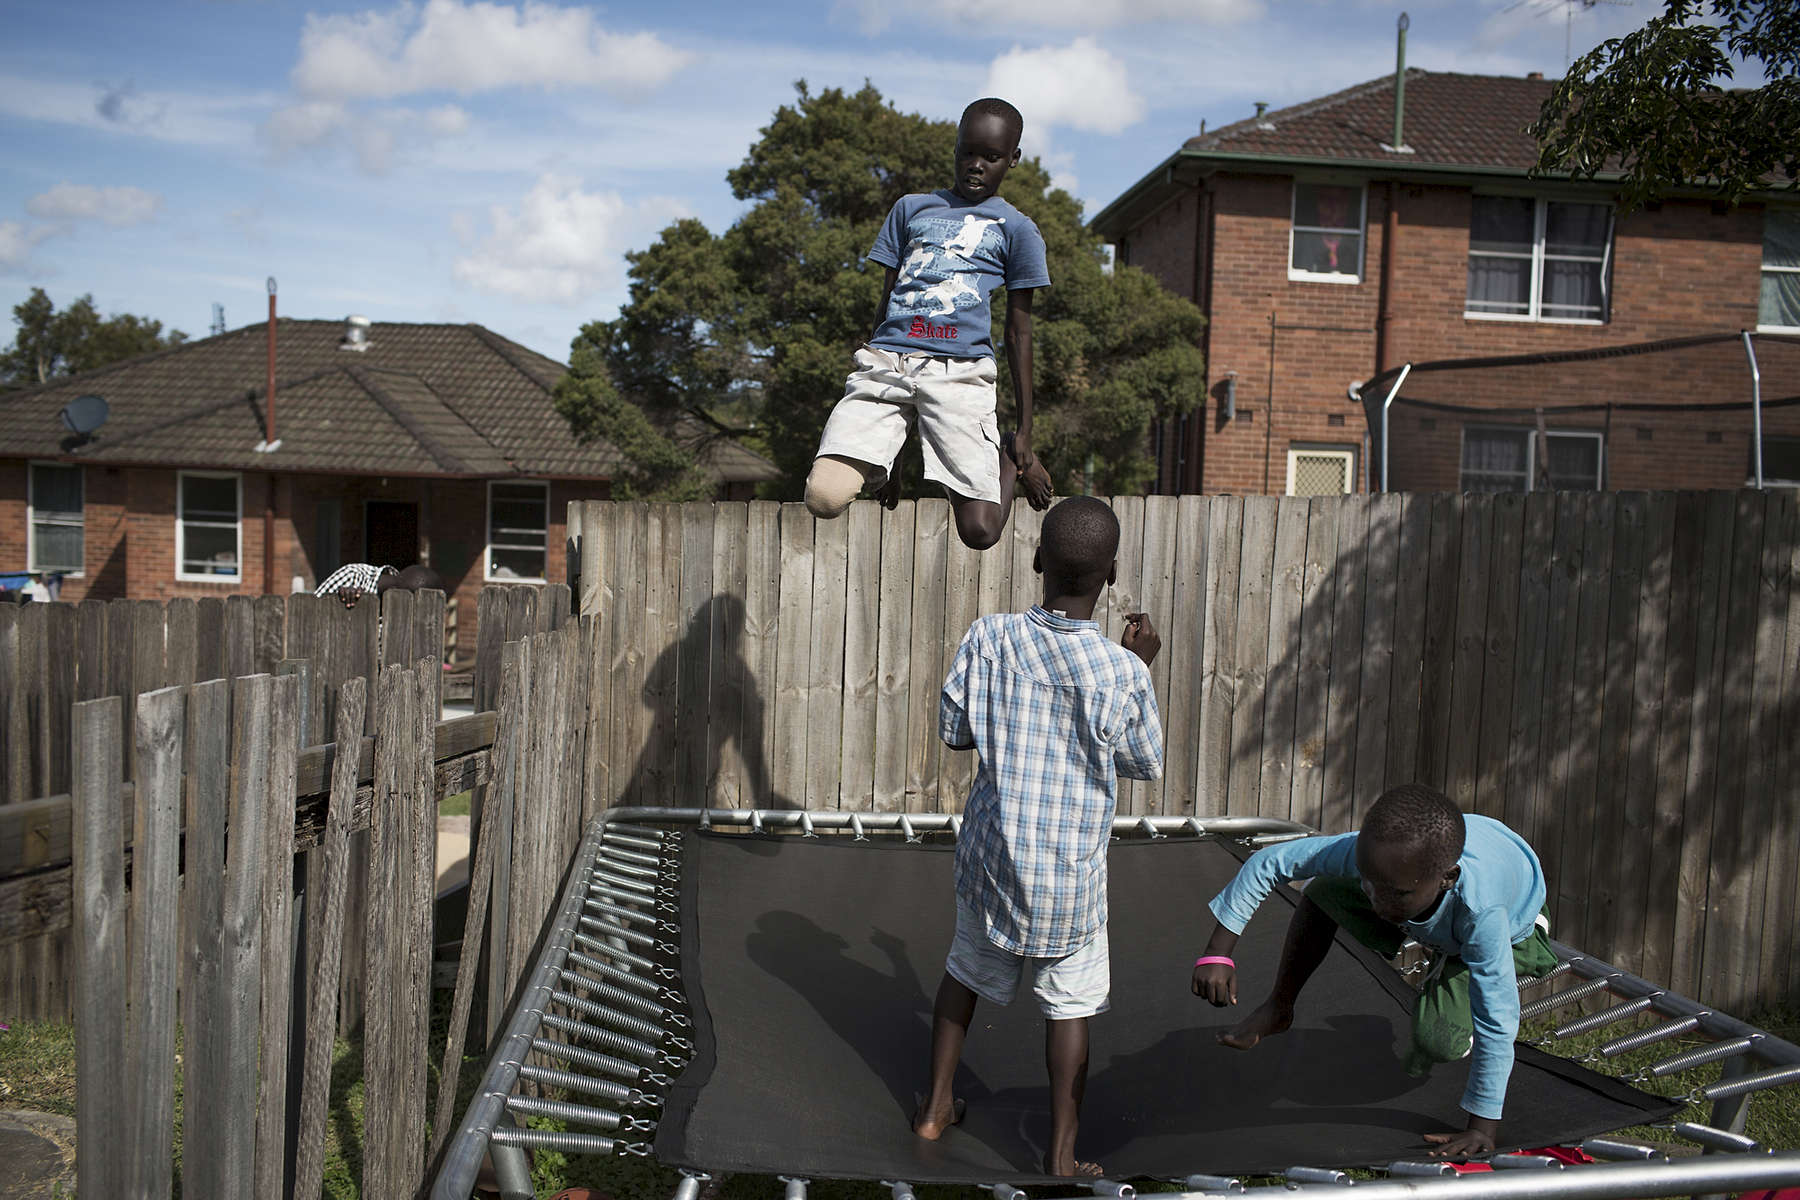 The Dong and Okumu families, both originally from South Sudan are from the Dinka and Acholi tribes respectively. Living in Newcastle, Australia, the families share a back fence and their children regularly play together. The families live in the suburb of Lambton which is also where the photographer grew up in, and where the Mayom family moved across the road in 2003.